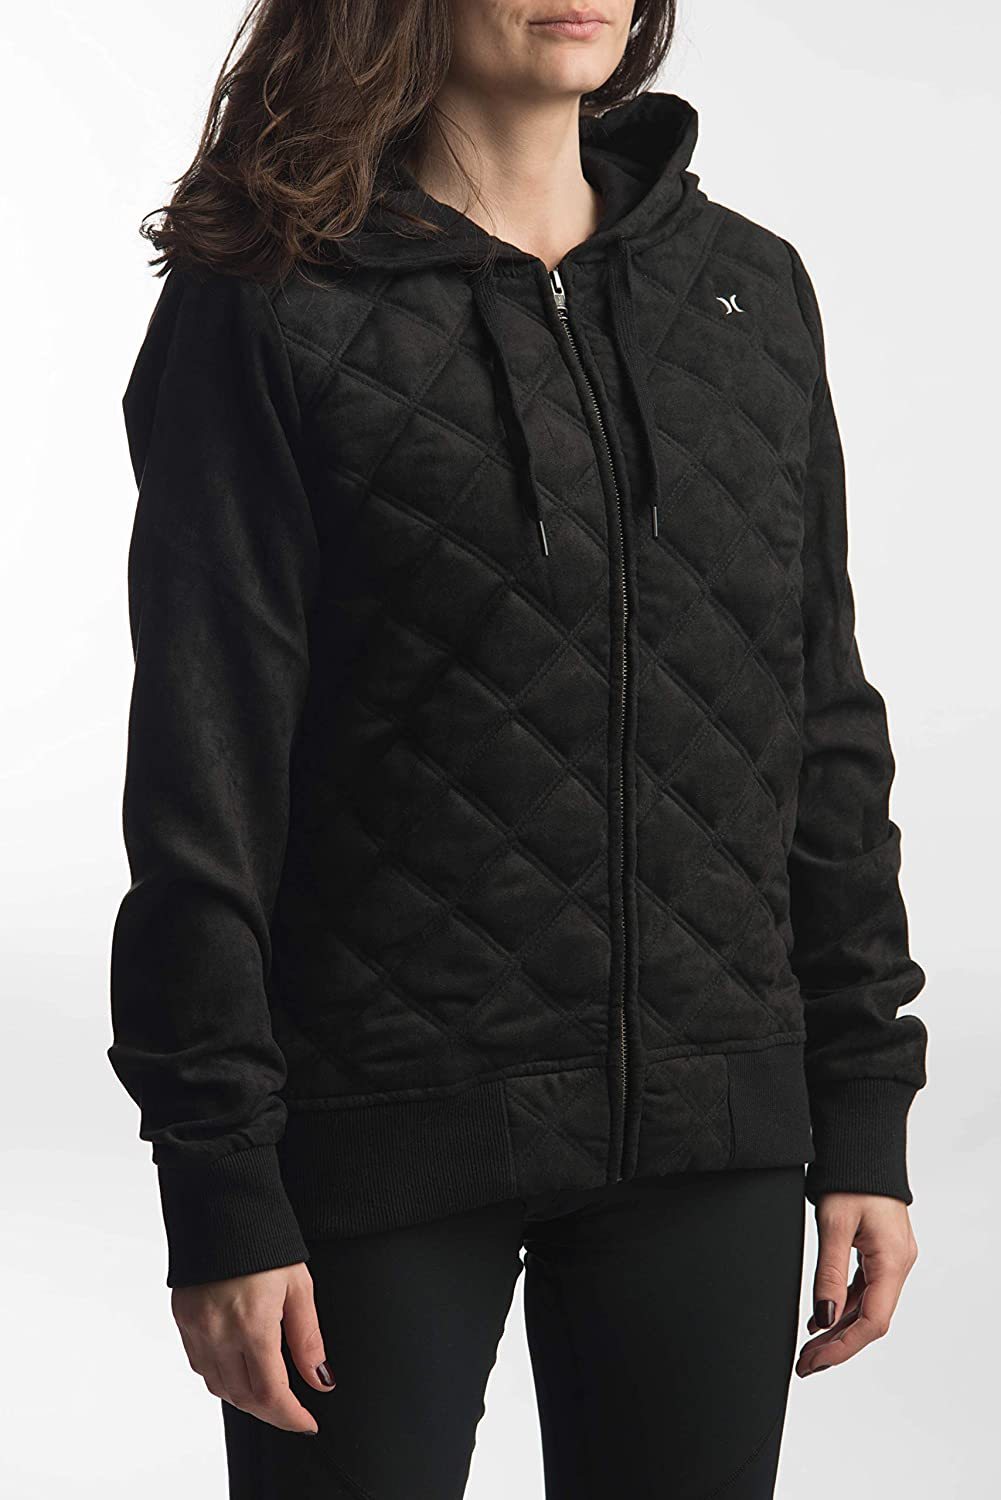 Mujer Hurley W Woven Rocky Jacket Chaquetas